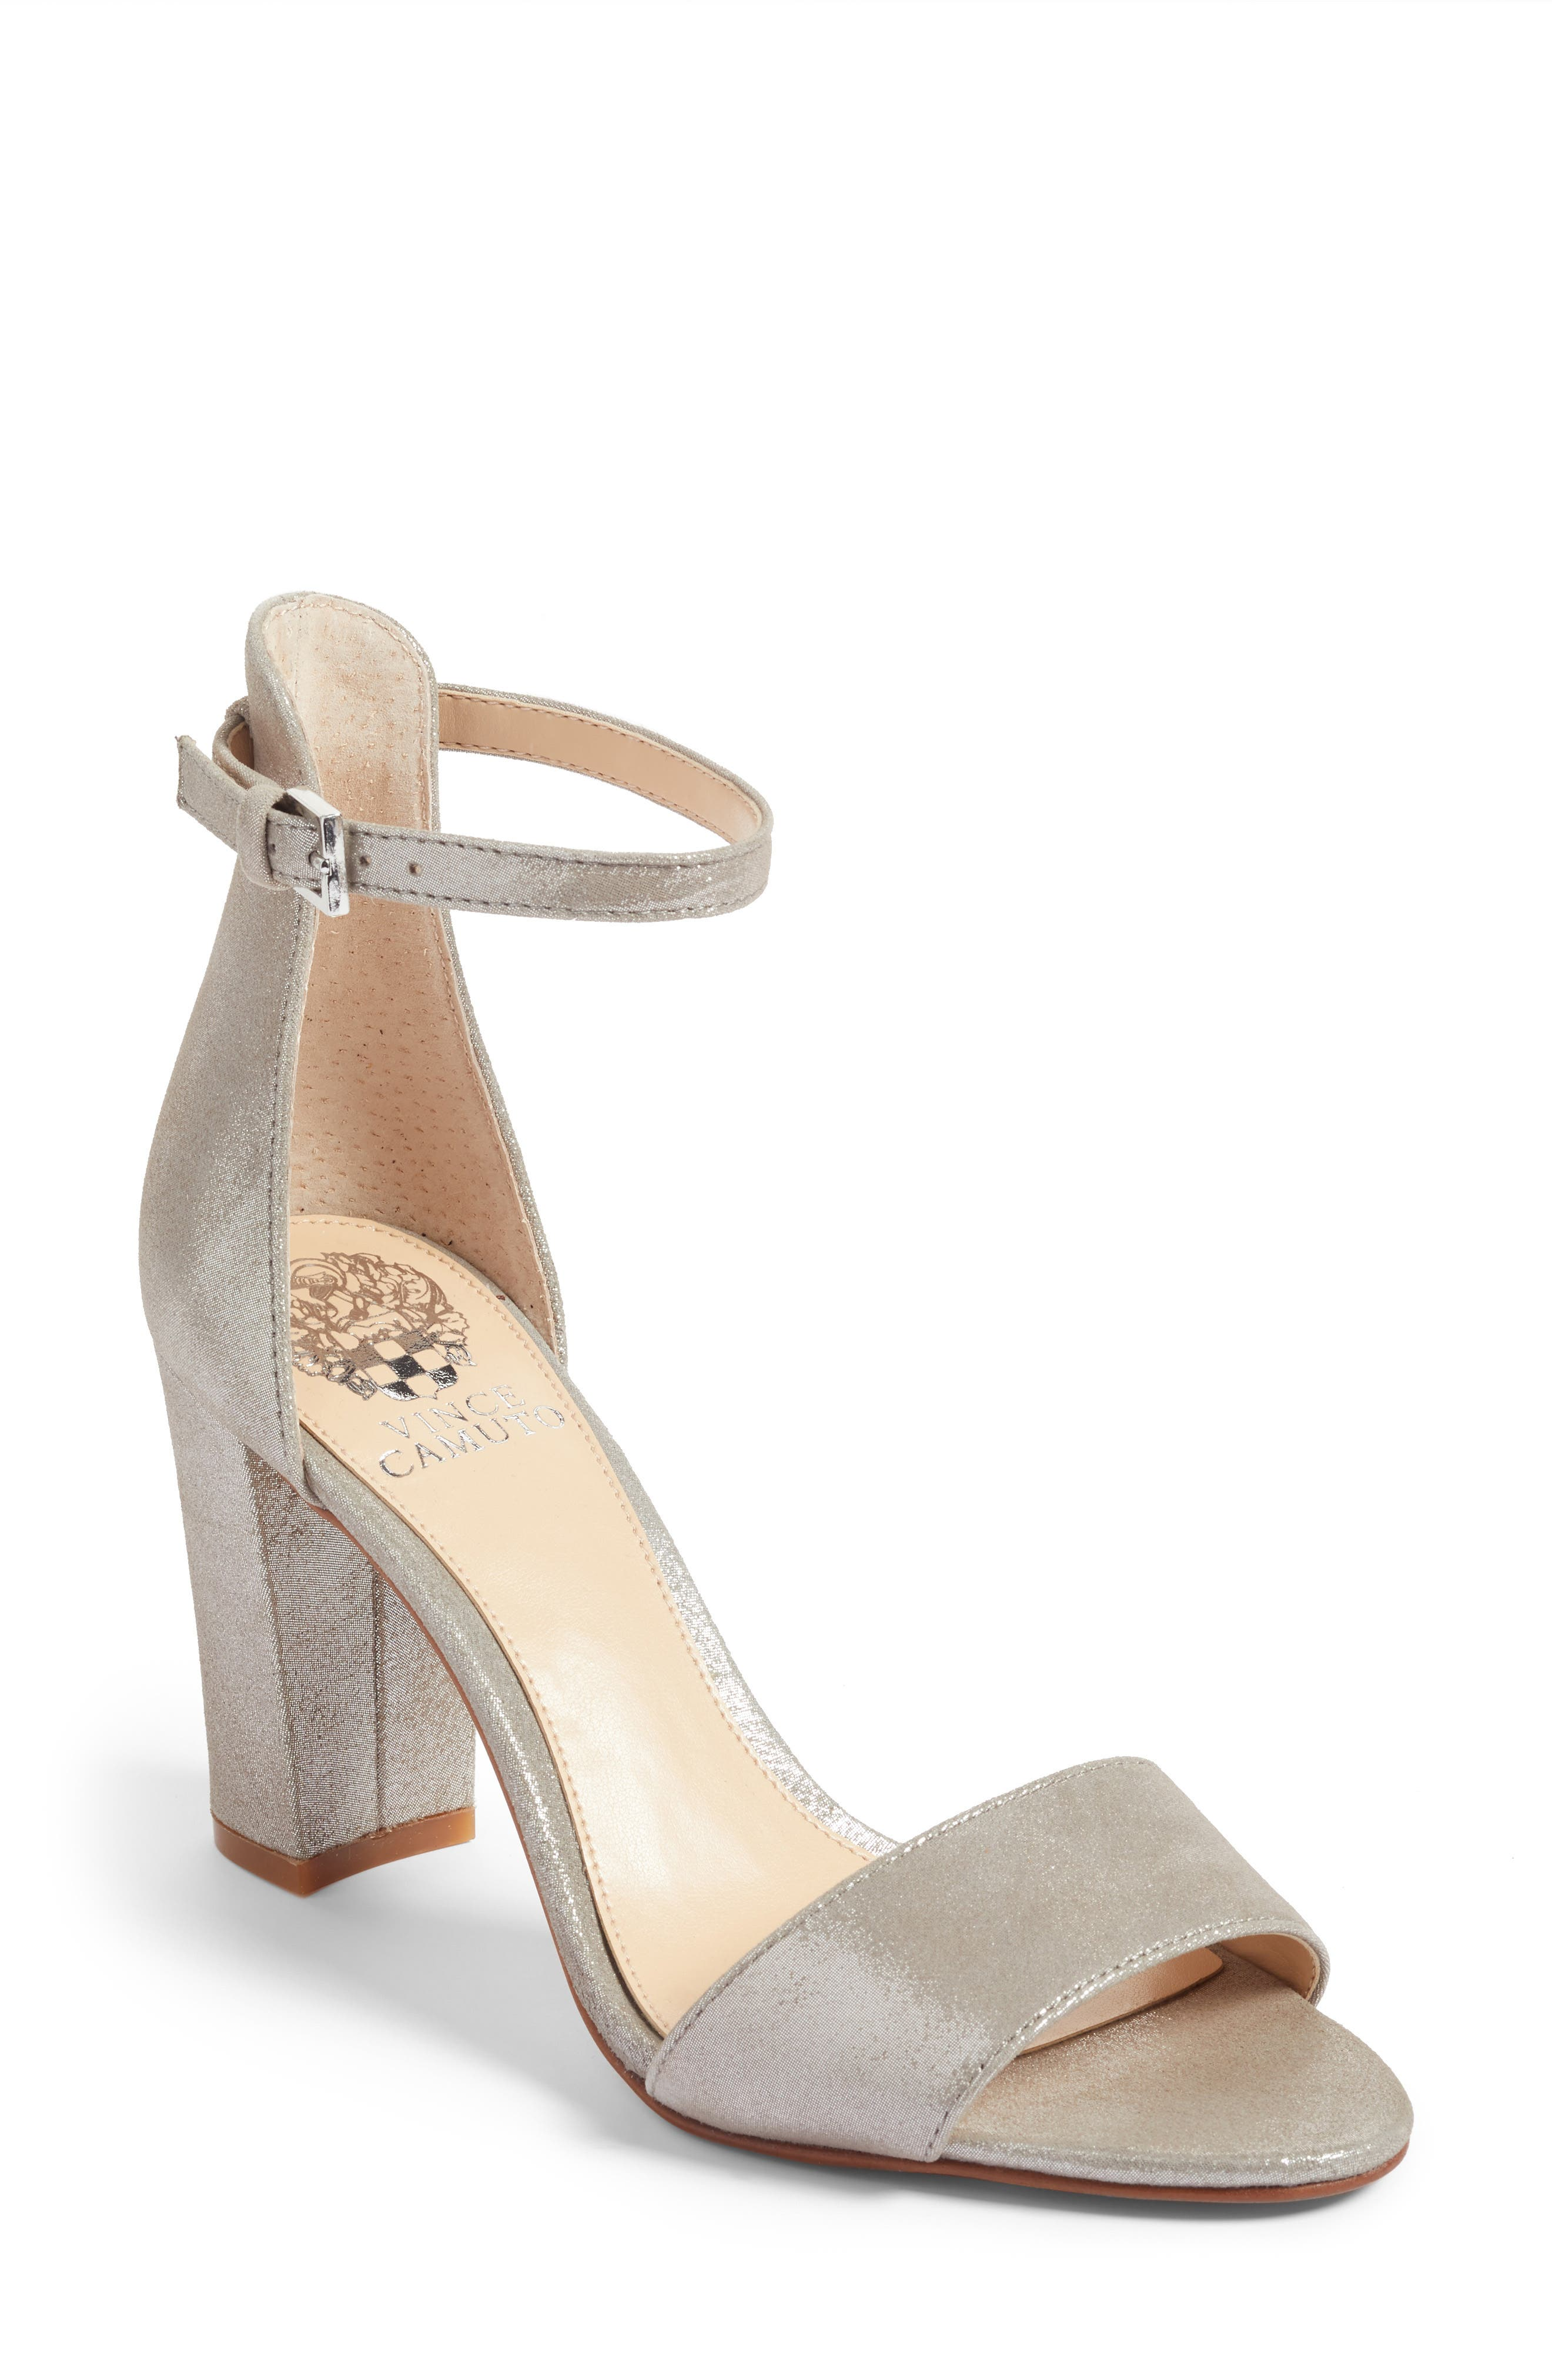 Alternate Image 1 Selected - Vince Camuto Corlina Ankle Strap Sandal (Women) (Nordstrom Exclusive)